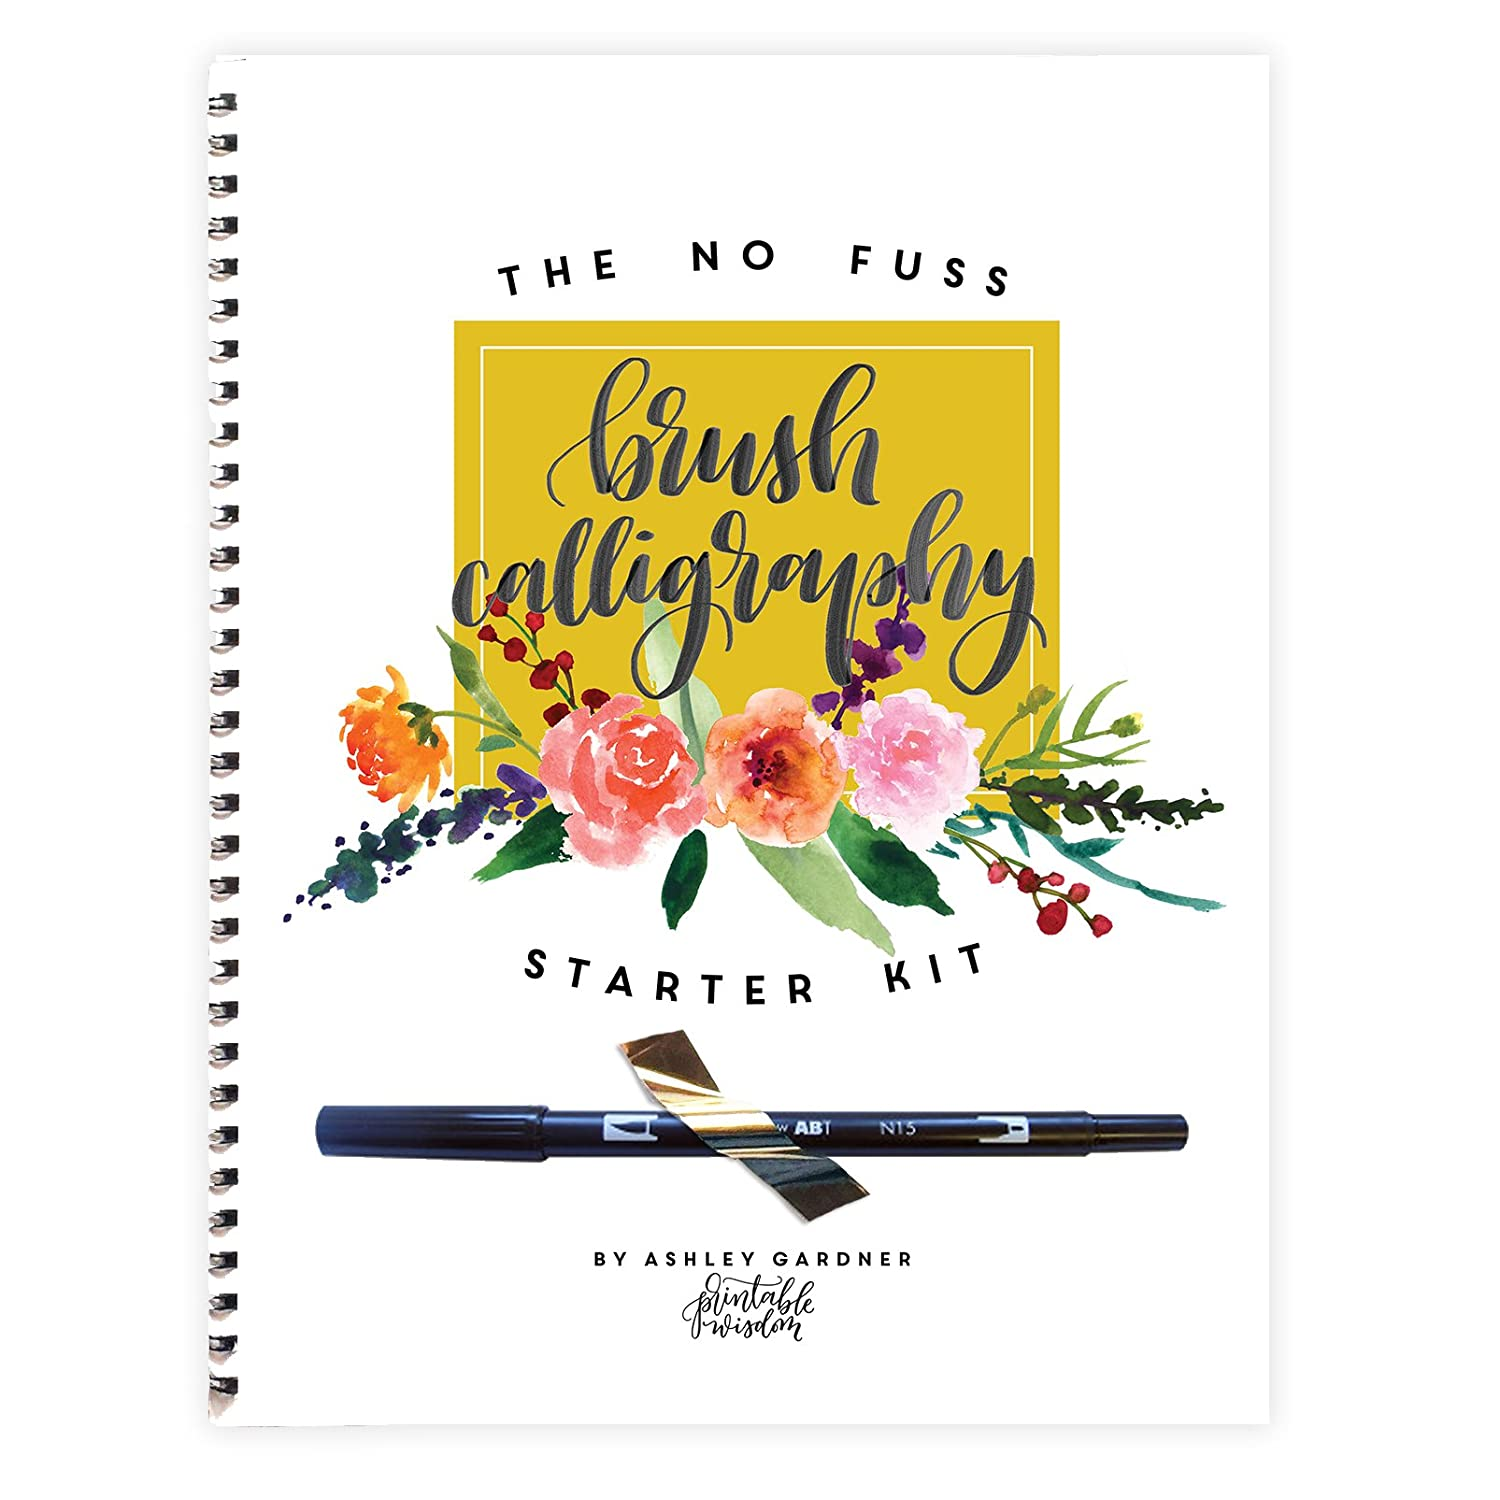 No Fuss Brush Calligraphy Starter Kit, Learn calligraphy for beginners and step by step instructions, calligraphy pen included, learn modern hand lettering, modern calligraphy techniques Ashley Gardner Printable Wisdom